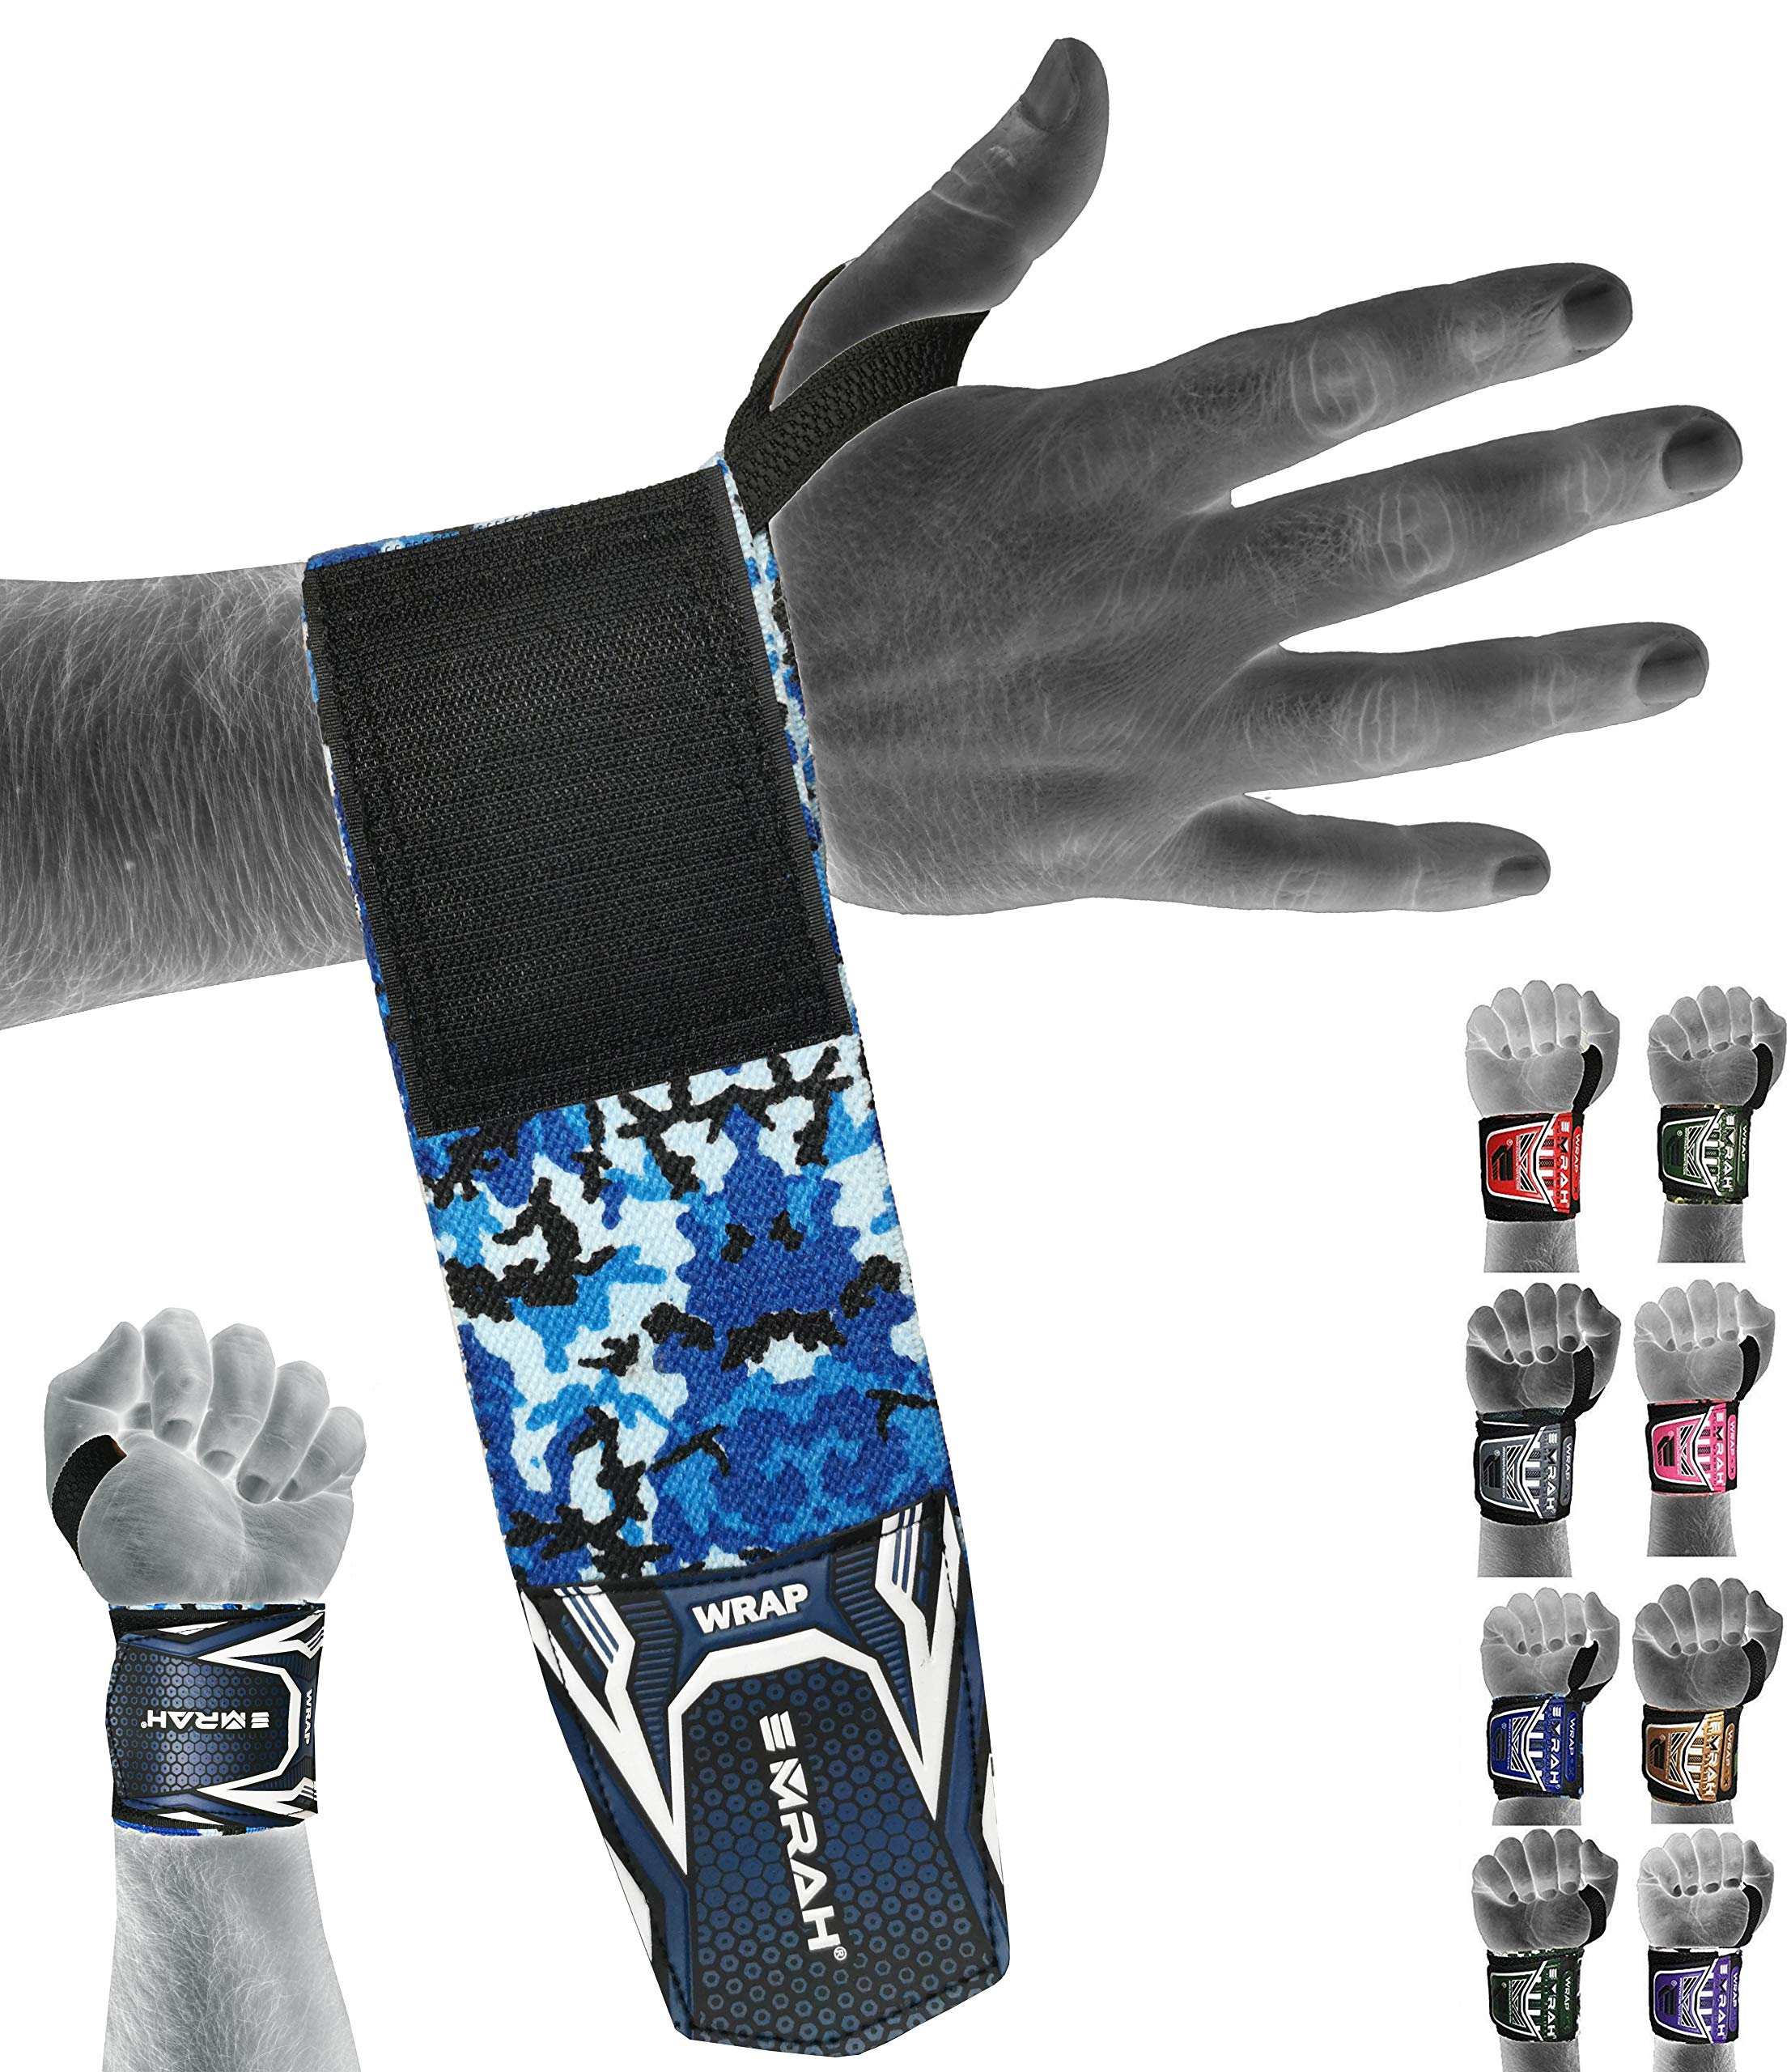 EMRAH Padded Weight Lifting Gym Training Glove Gym Straps Wrap Wrist Support